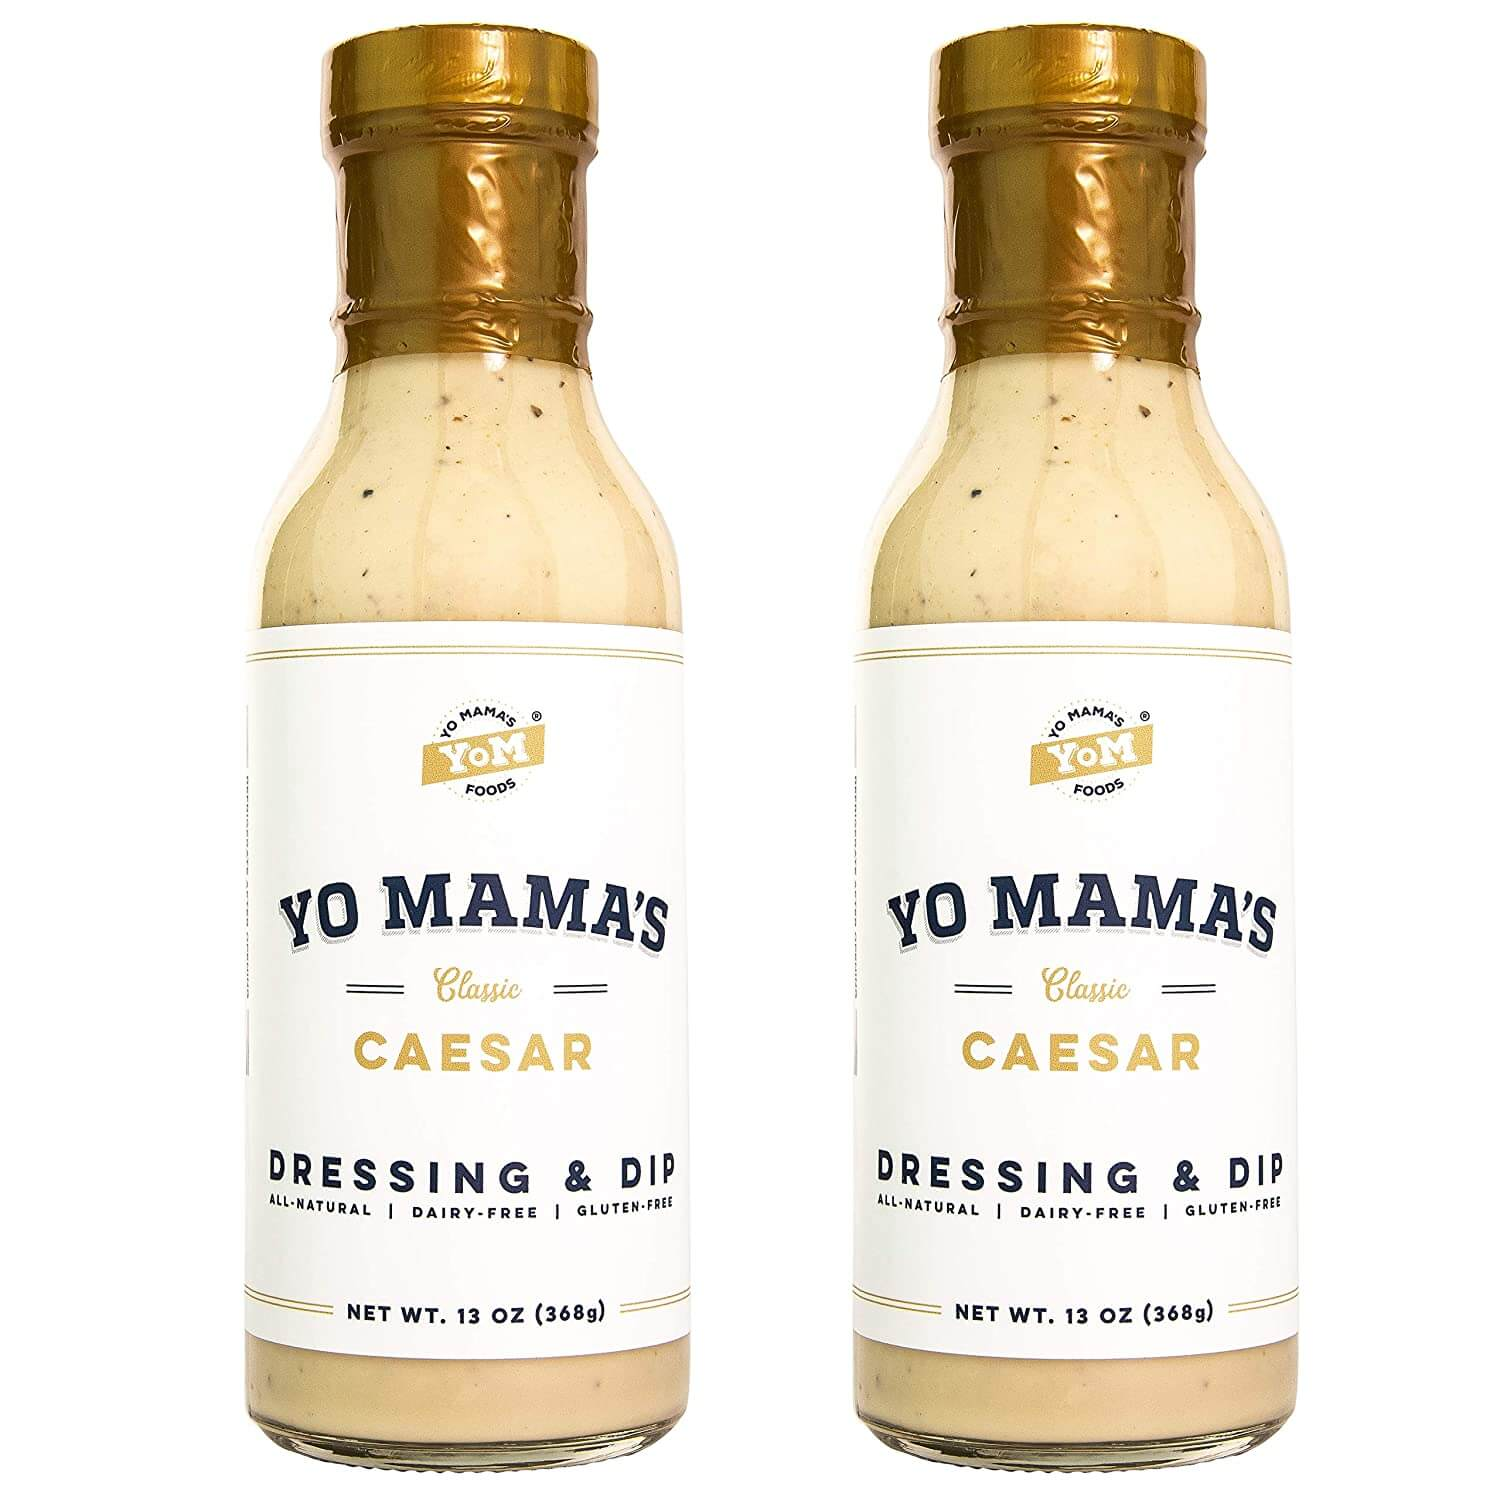 Caesar Dressing and Dip by Yo Mamas Foods